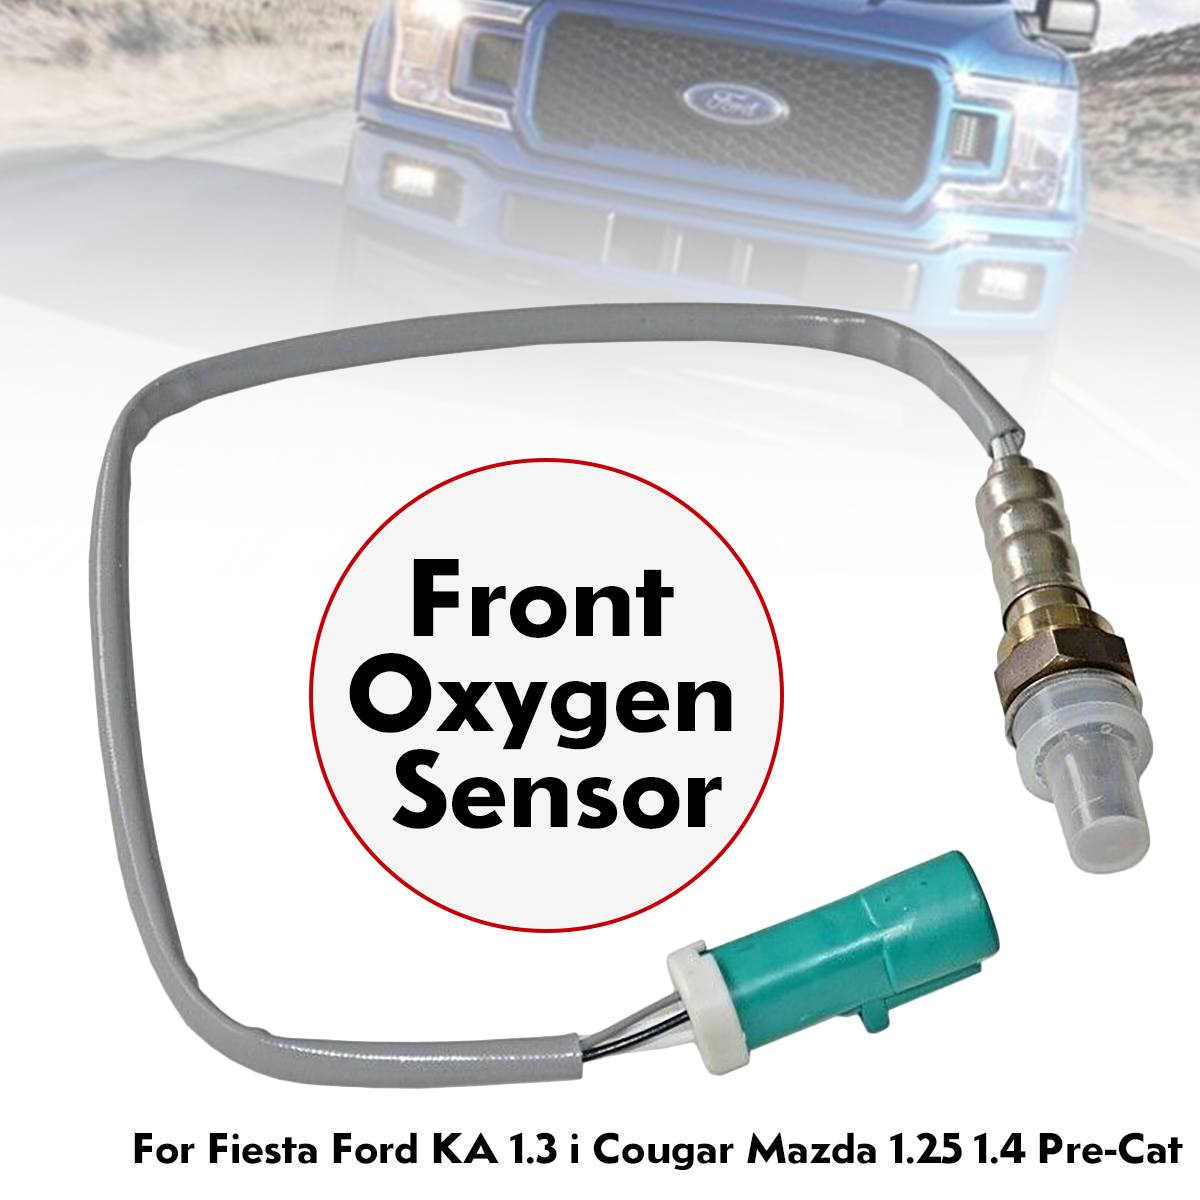 Oxygen Sensor O2 Front 2S6A-9F472-BB For Fiesta-Ford KA 1.3 i Cougar-Mazda 1.25 1.4 Pre-Cat 48cm Auto Replacement PartsOxygen Sensor O2 Front 2S6A-9F472-BB For Fiesta-Ford KA 1.3 i Cougar-Mazda 1.25 1.4 Pre-Cat 48cm Auto Replacement Parts